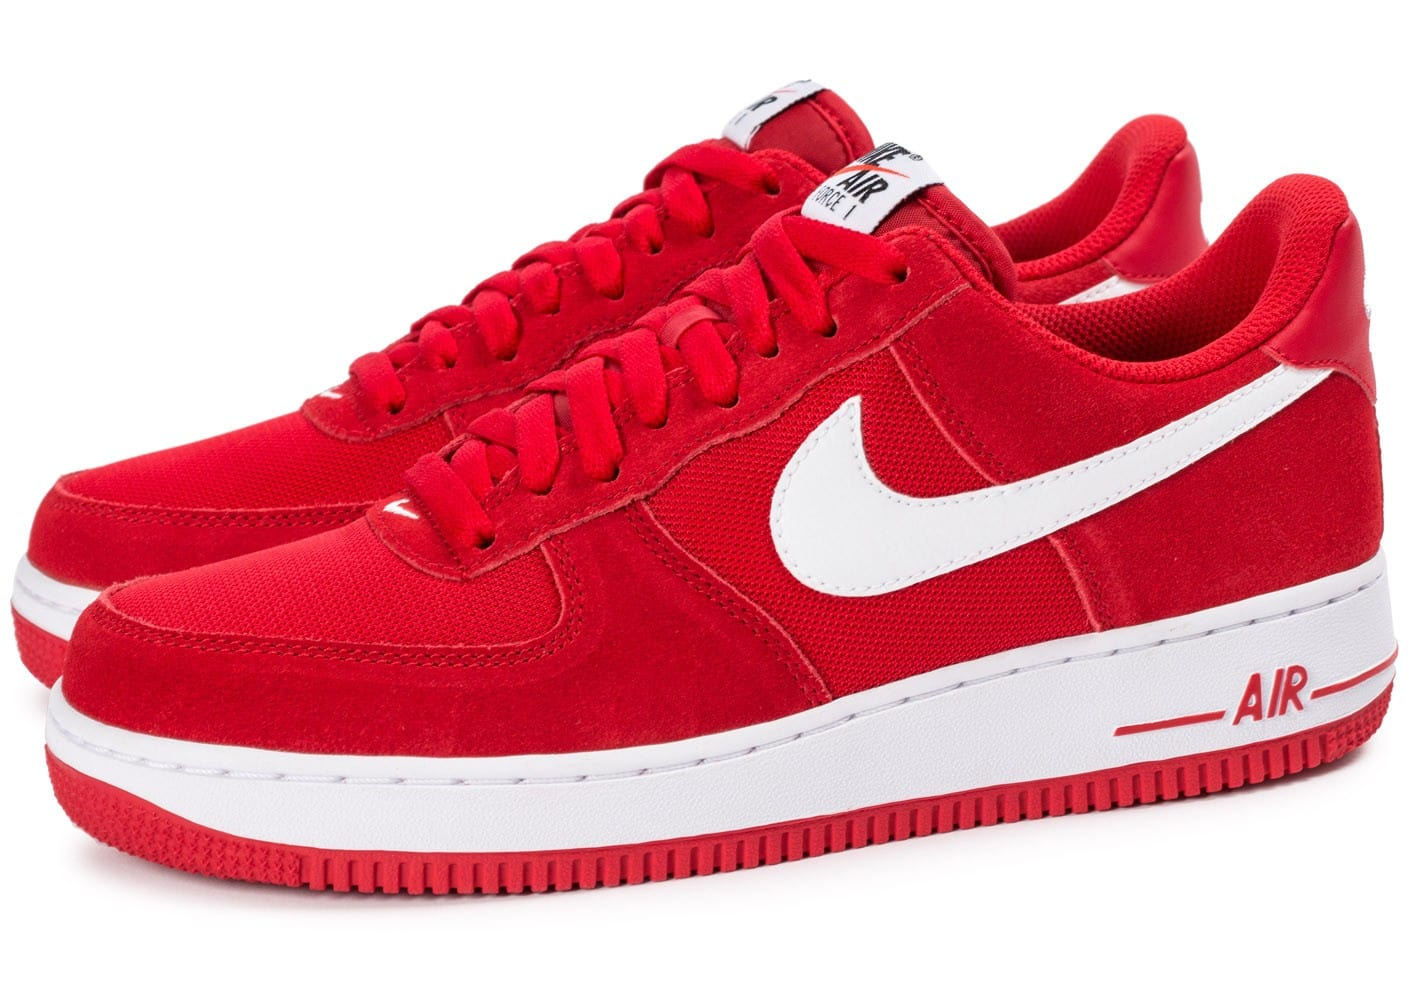 nike air force 1 pas cher Outlet Online France ICT2HC2